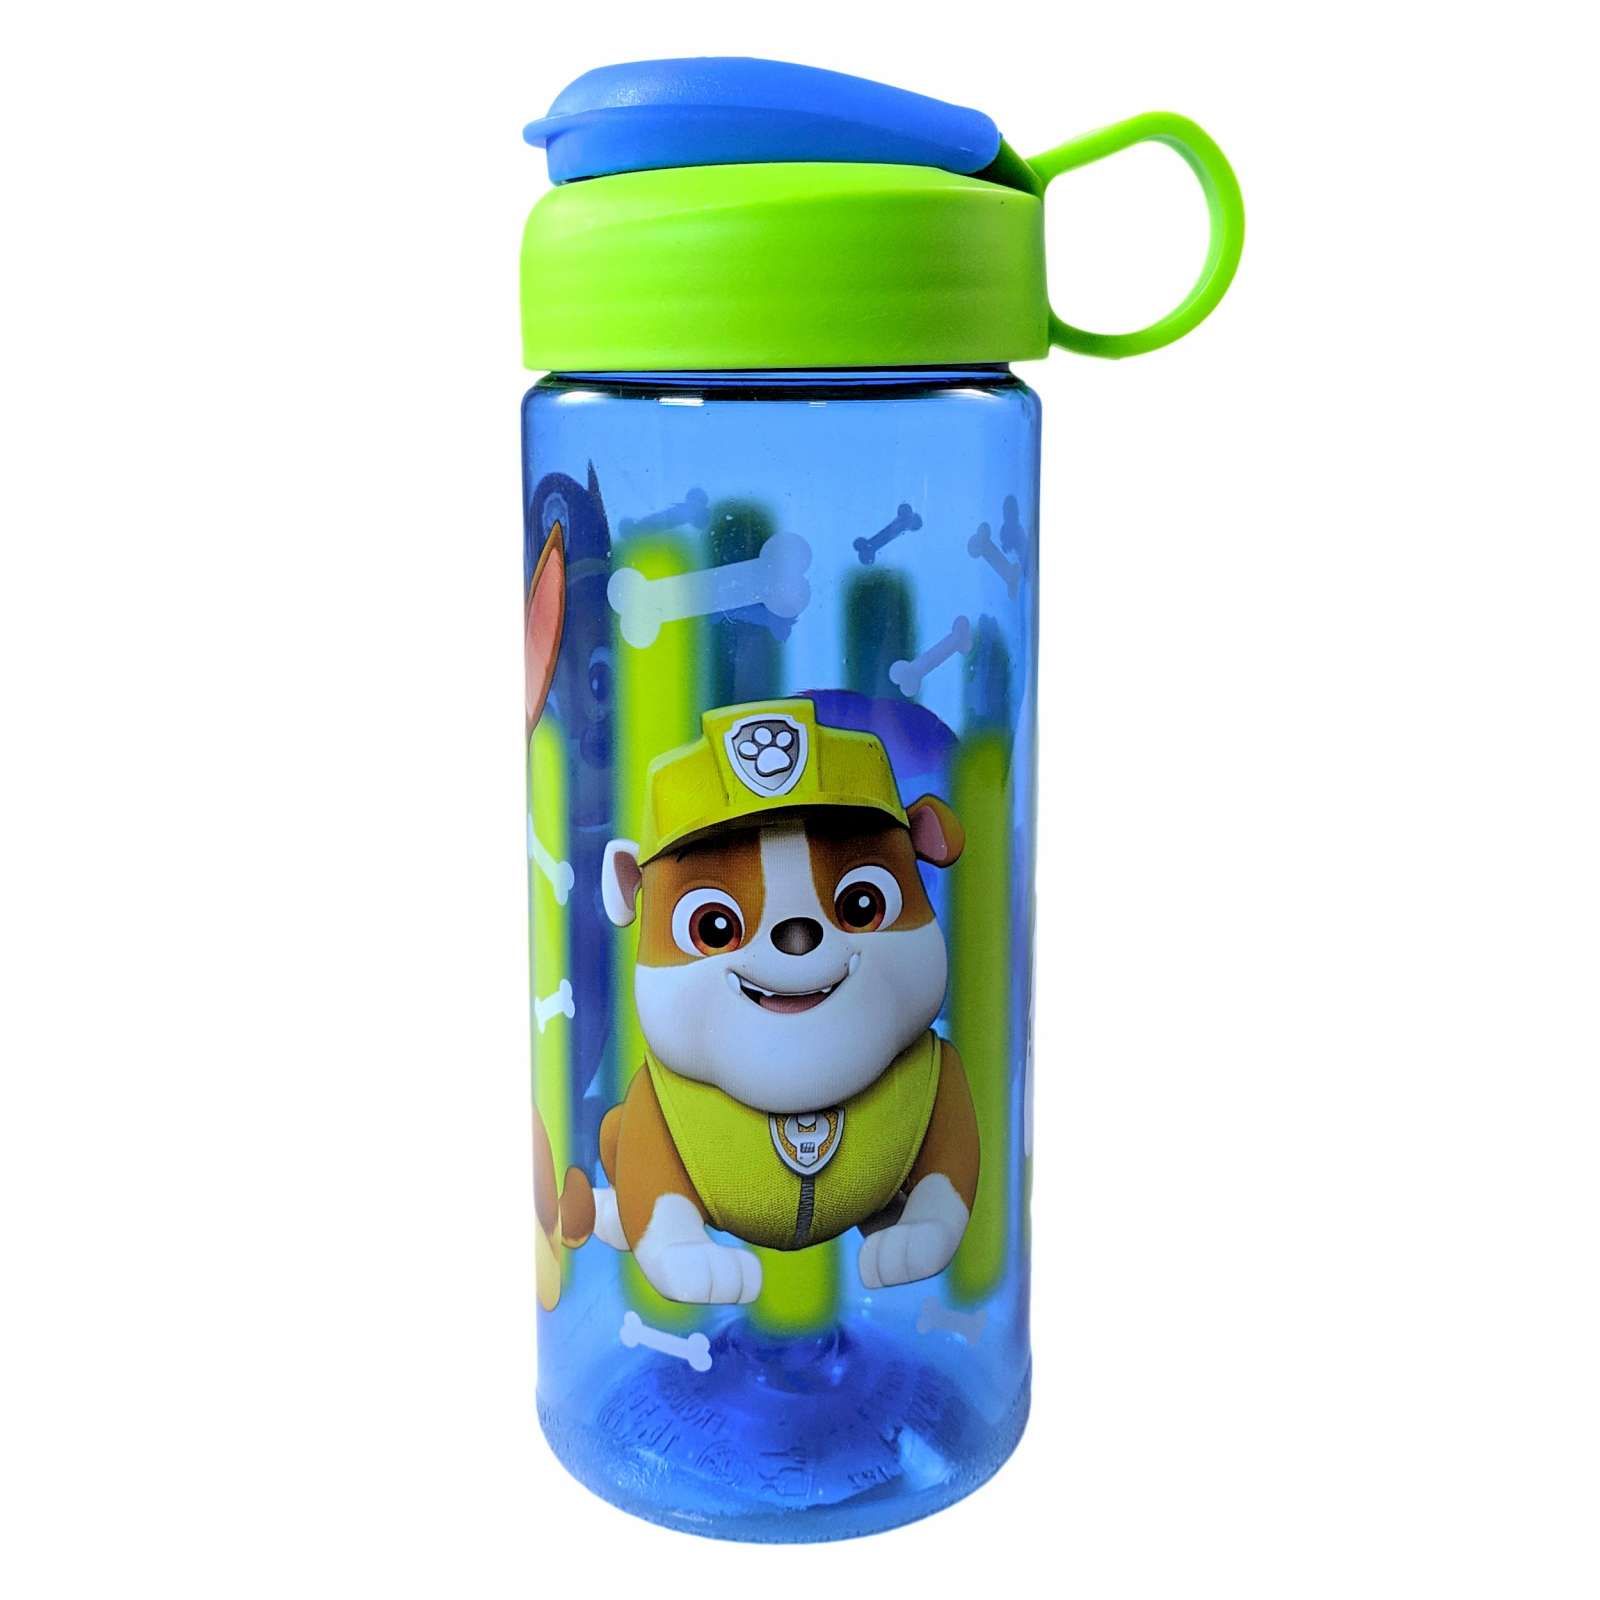 Paw Patrol from Nickelodeon 16.5oz Water Bottle Snap Lid